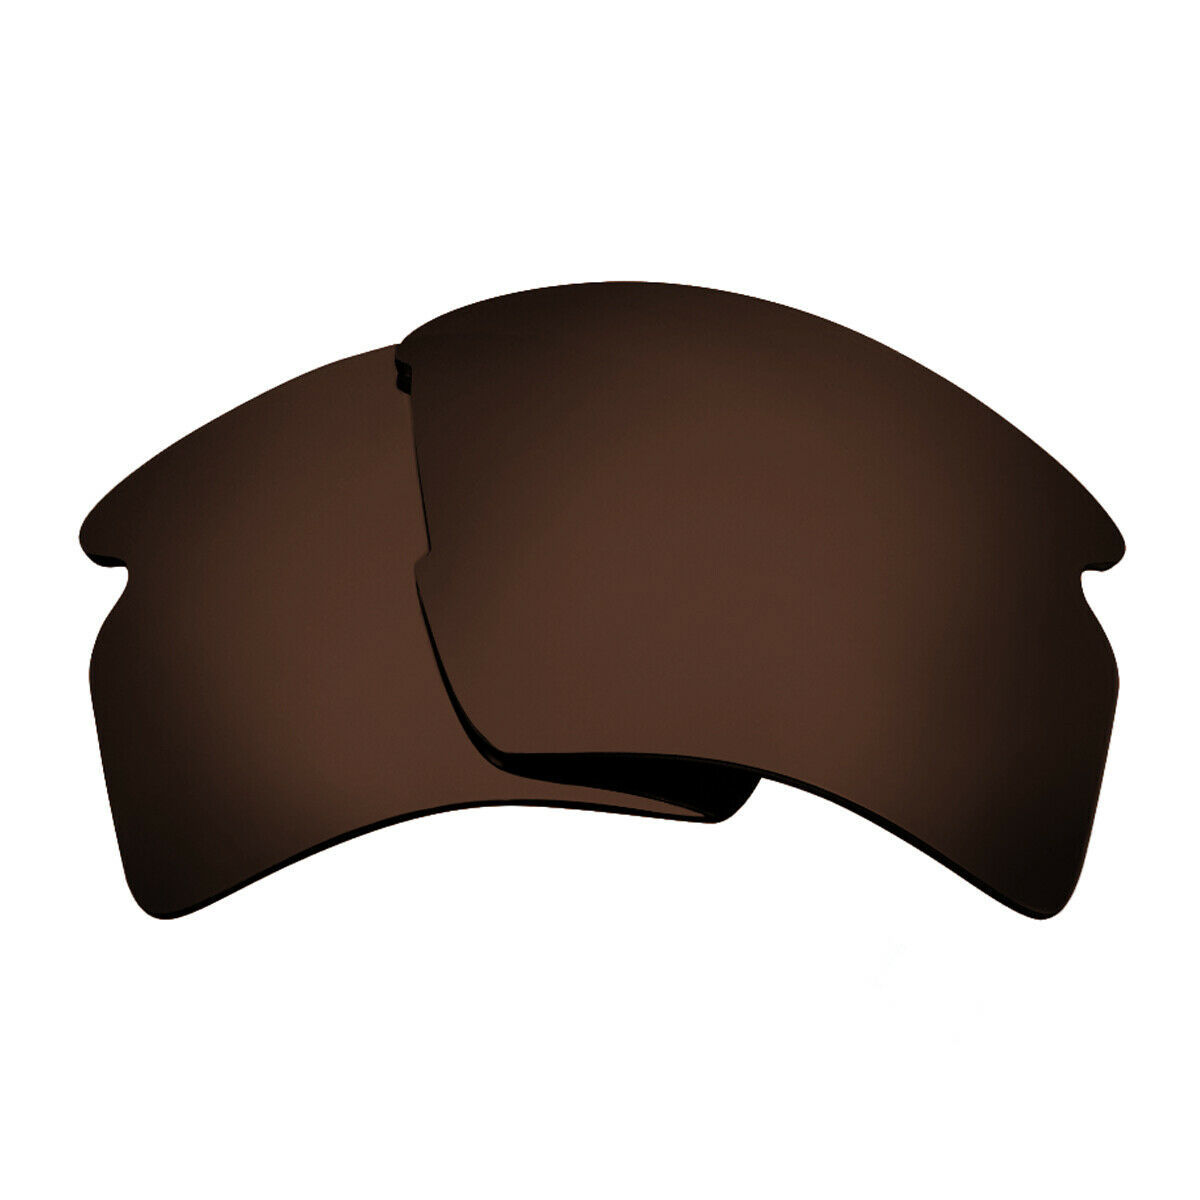 Primary image for Polarized Replacement Lenses for-Oakley Flak 2.0 XL Sunglass Anti-Scratch Brown